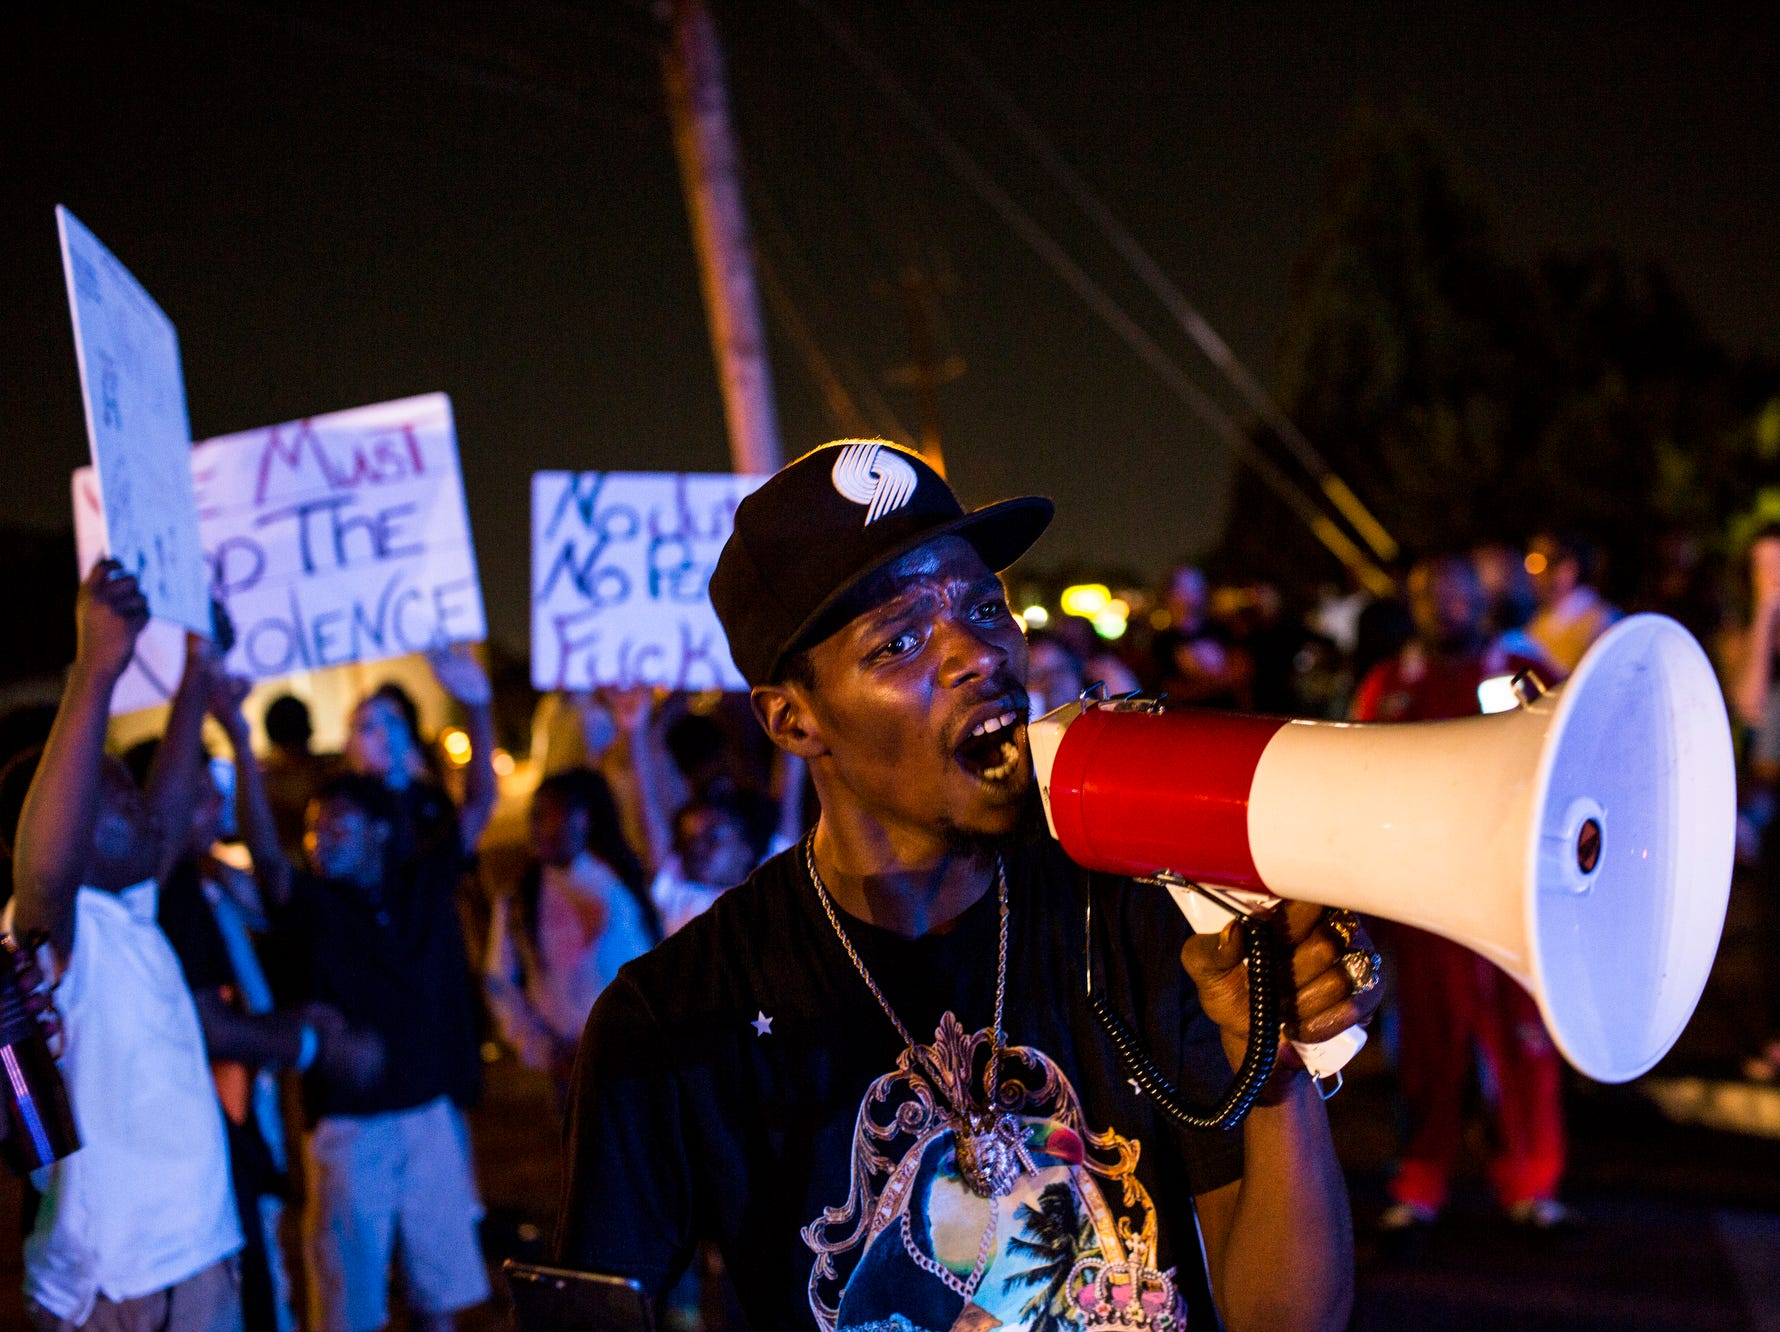 September 19 2018 - Mario Denton yells through a megaphone along Airways Blvd. near the Memphis Police Department's Airways Station while protesting the officer-involved shooting of Martavious Banks. The protests came after news that officers involved in the shooting of Banks may have improperly switched off their dashboard or body cameras, or didn't turn them on.